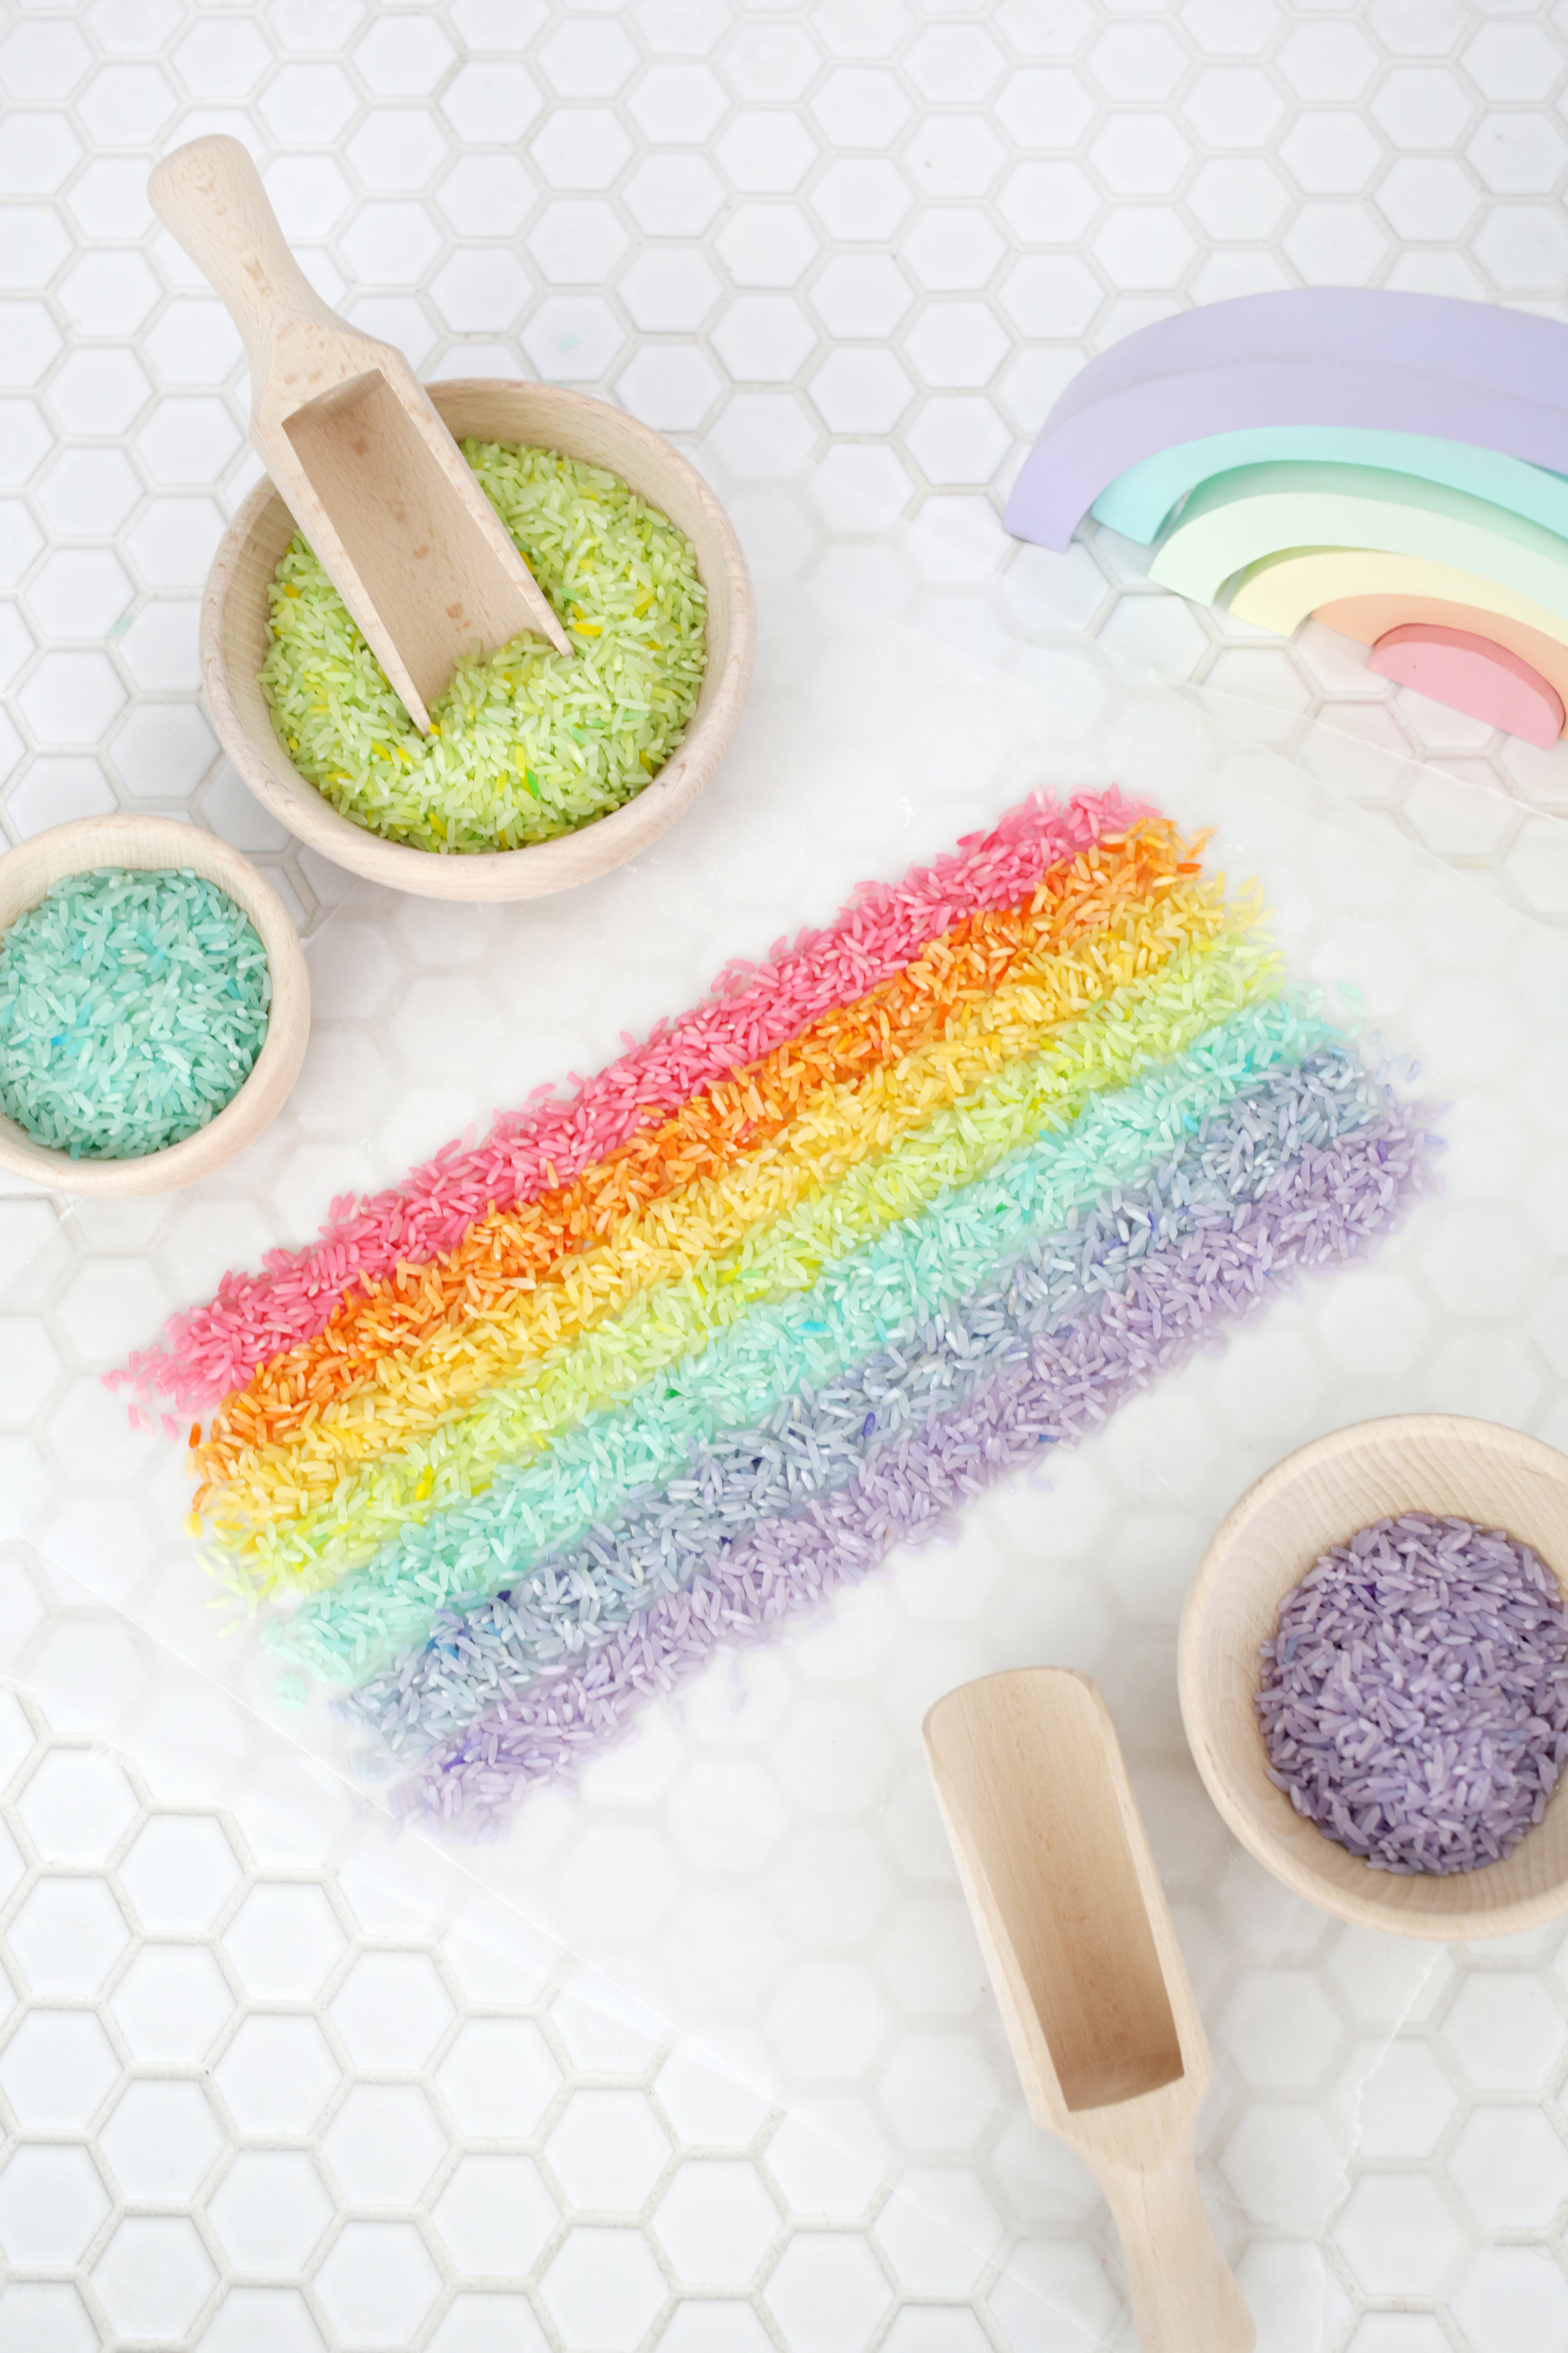 Make Rainbow Rice in 5 Minutes!